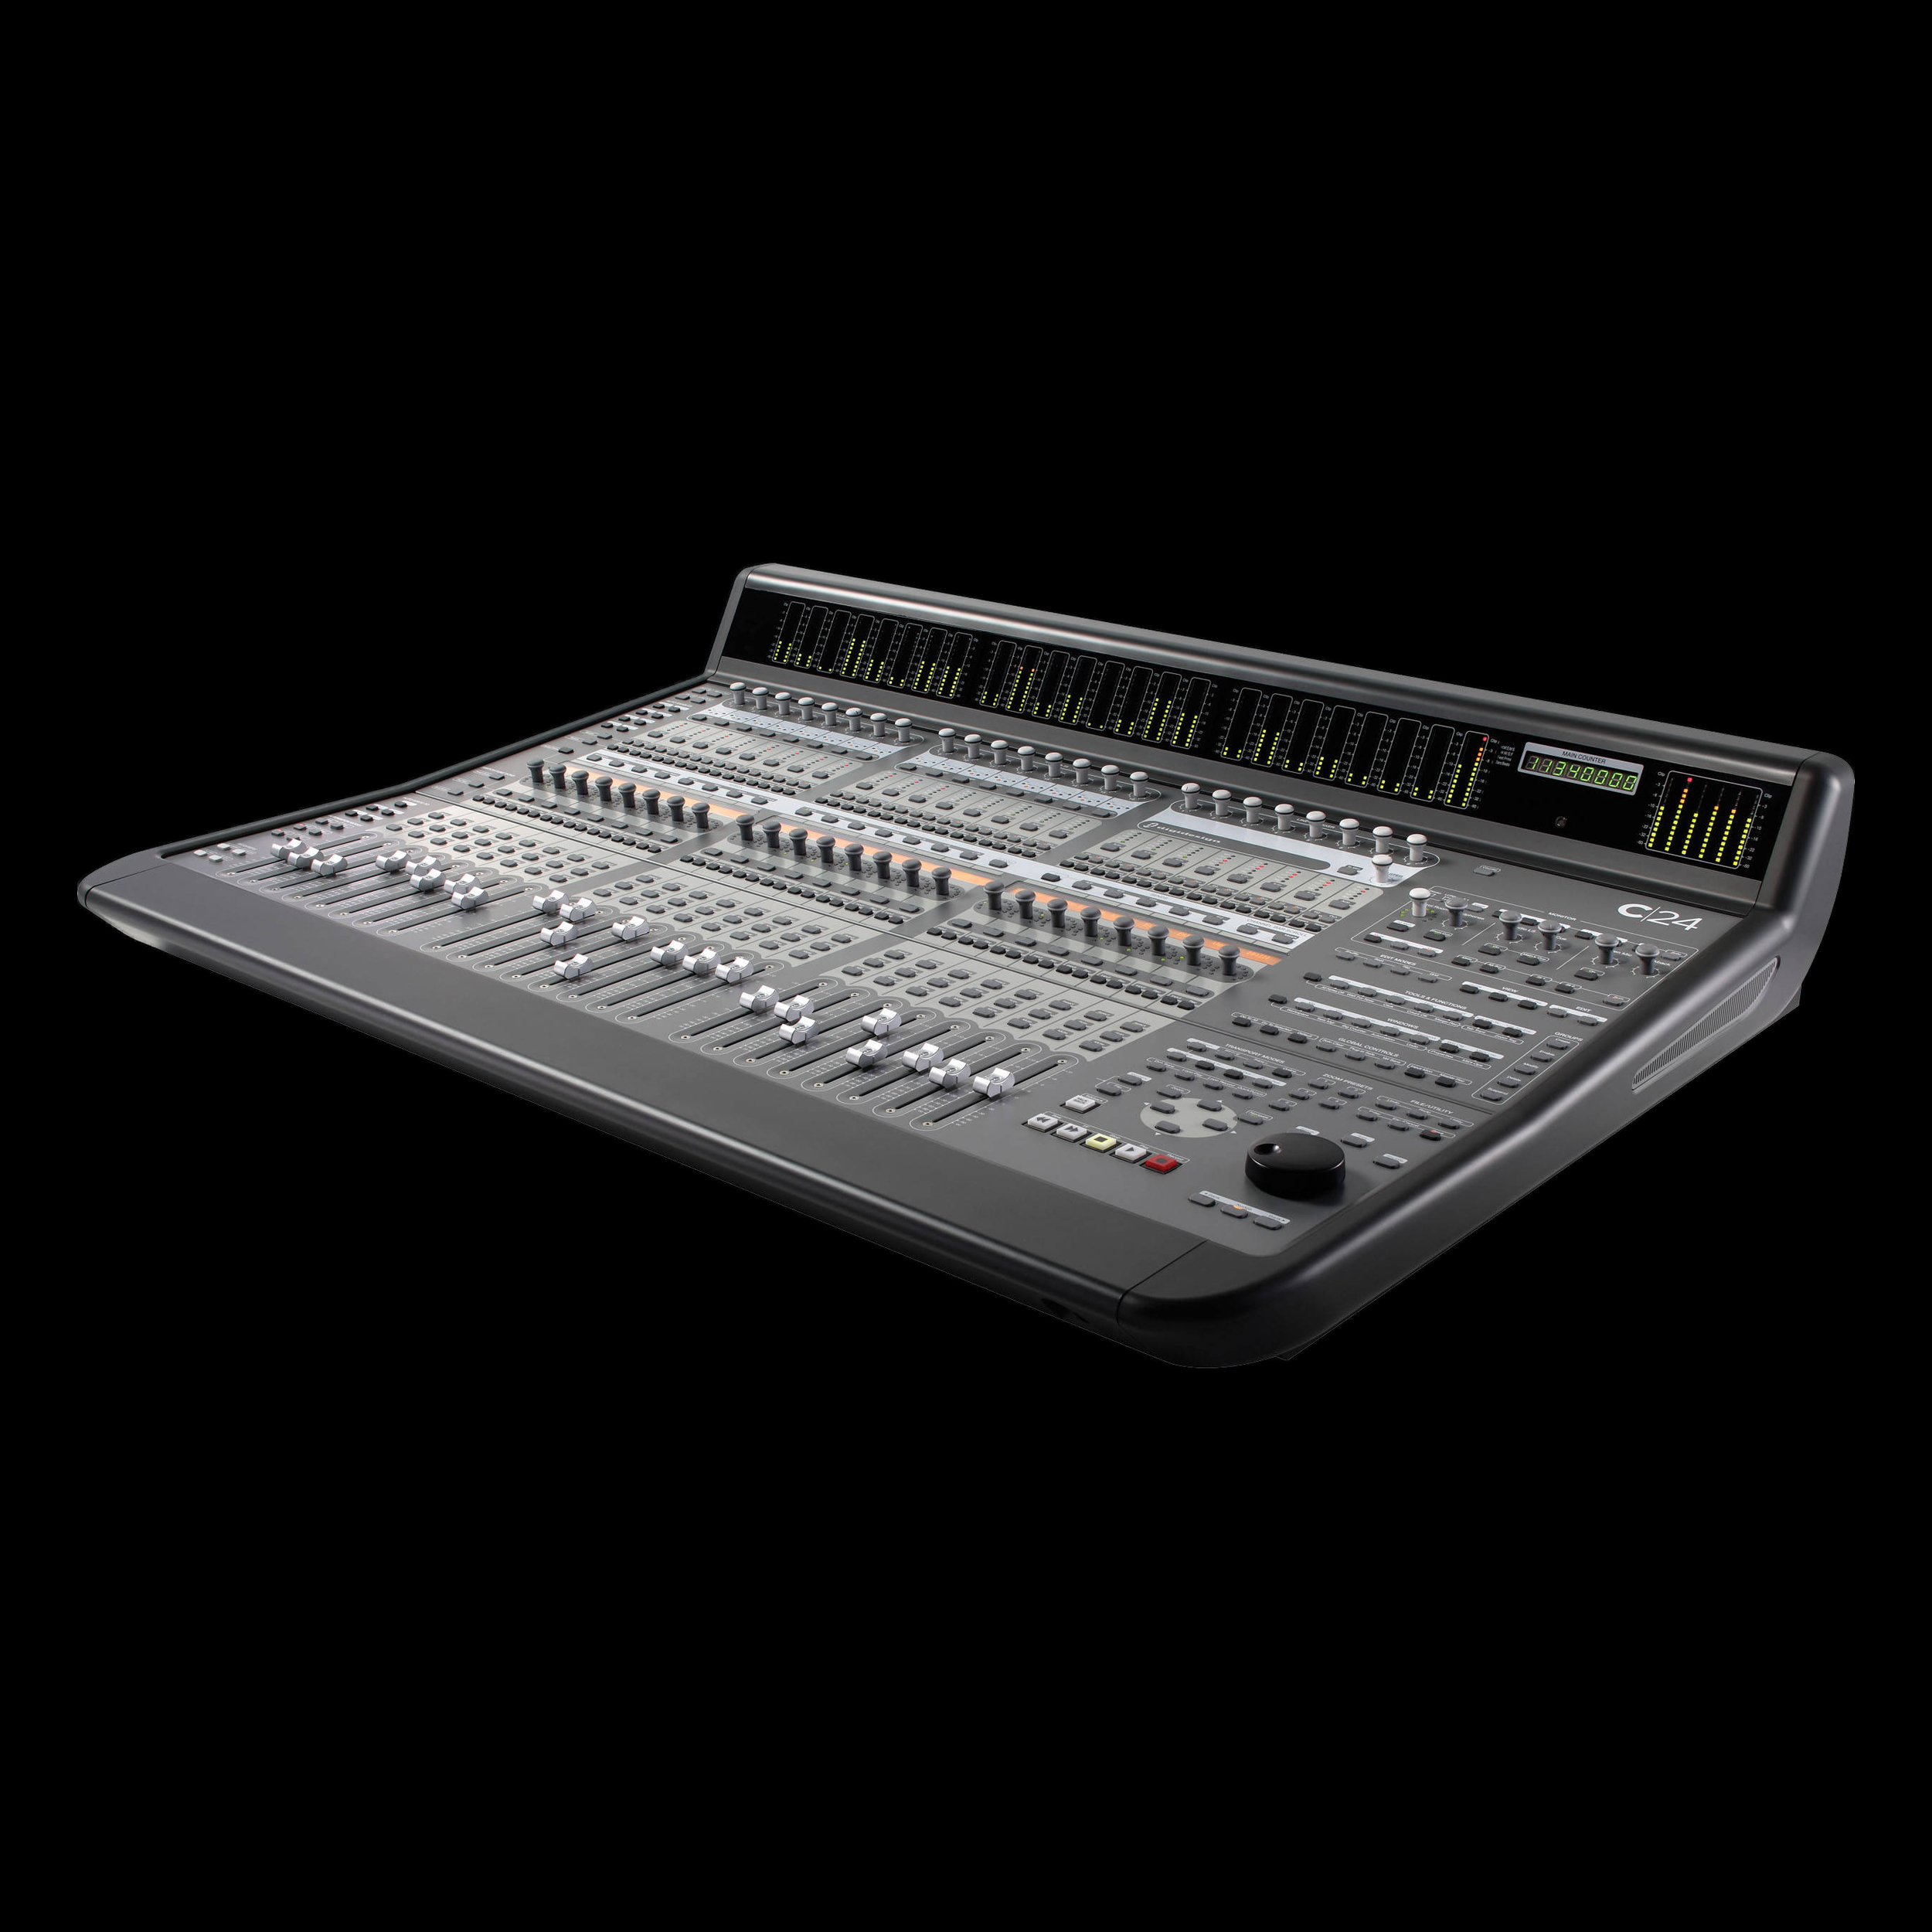 Digidesign avid c24 control surface 724643106485 ebay for Firewire mixer motorized faders